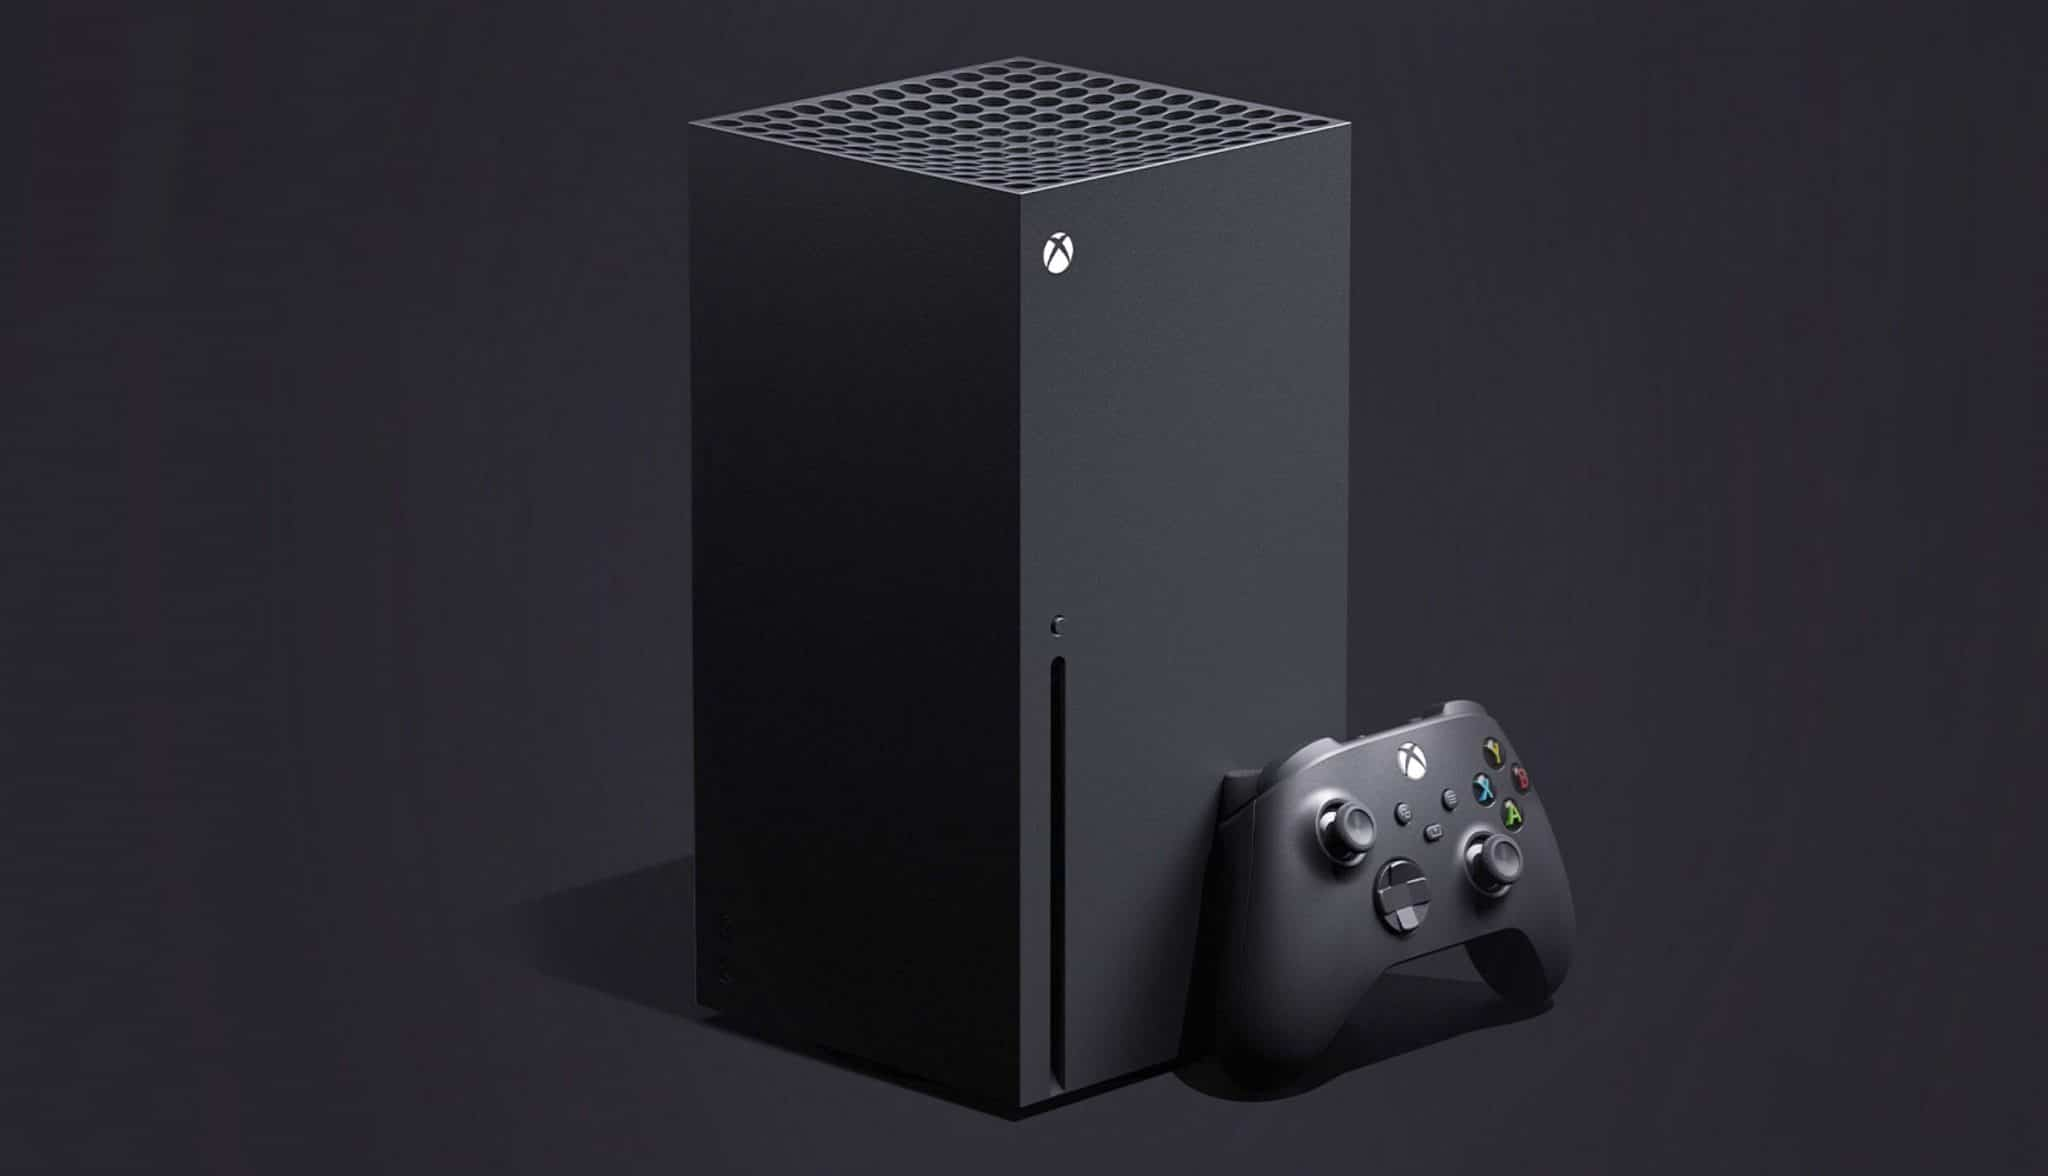 xbox series x console image